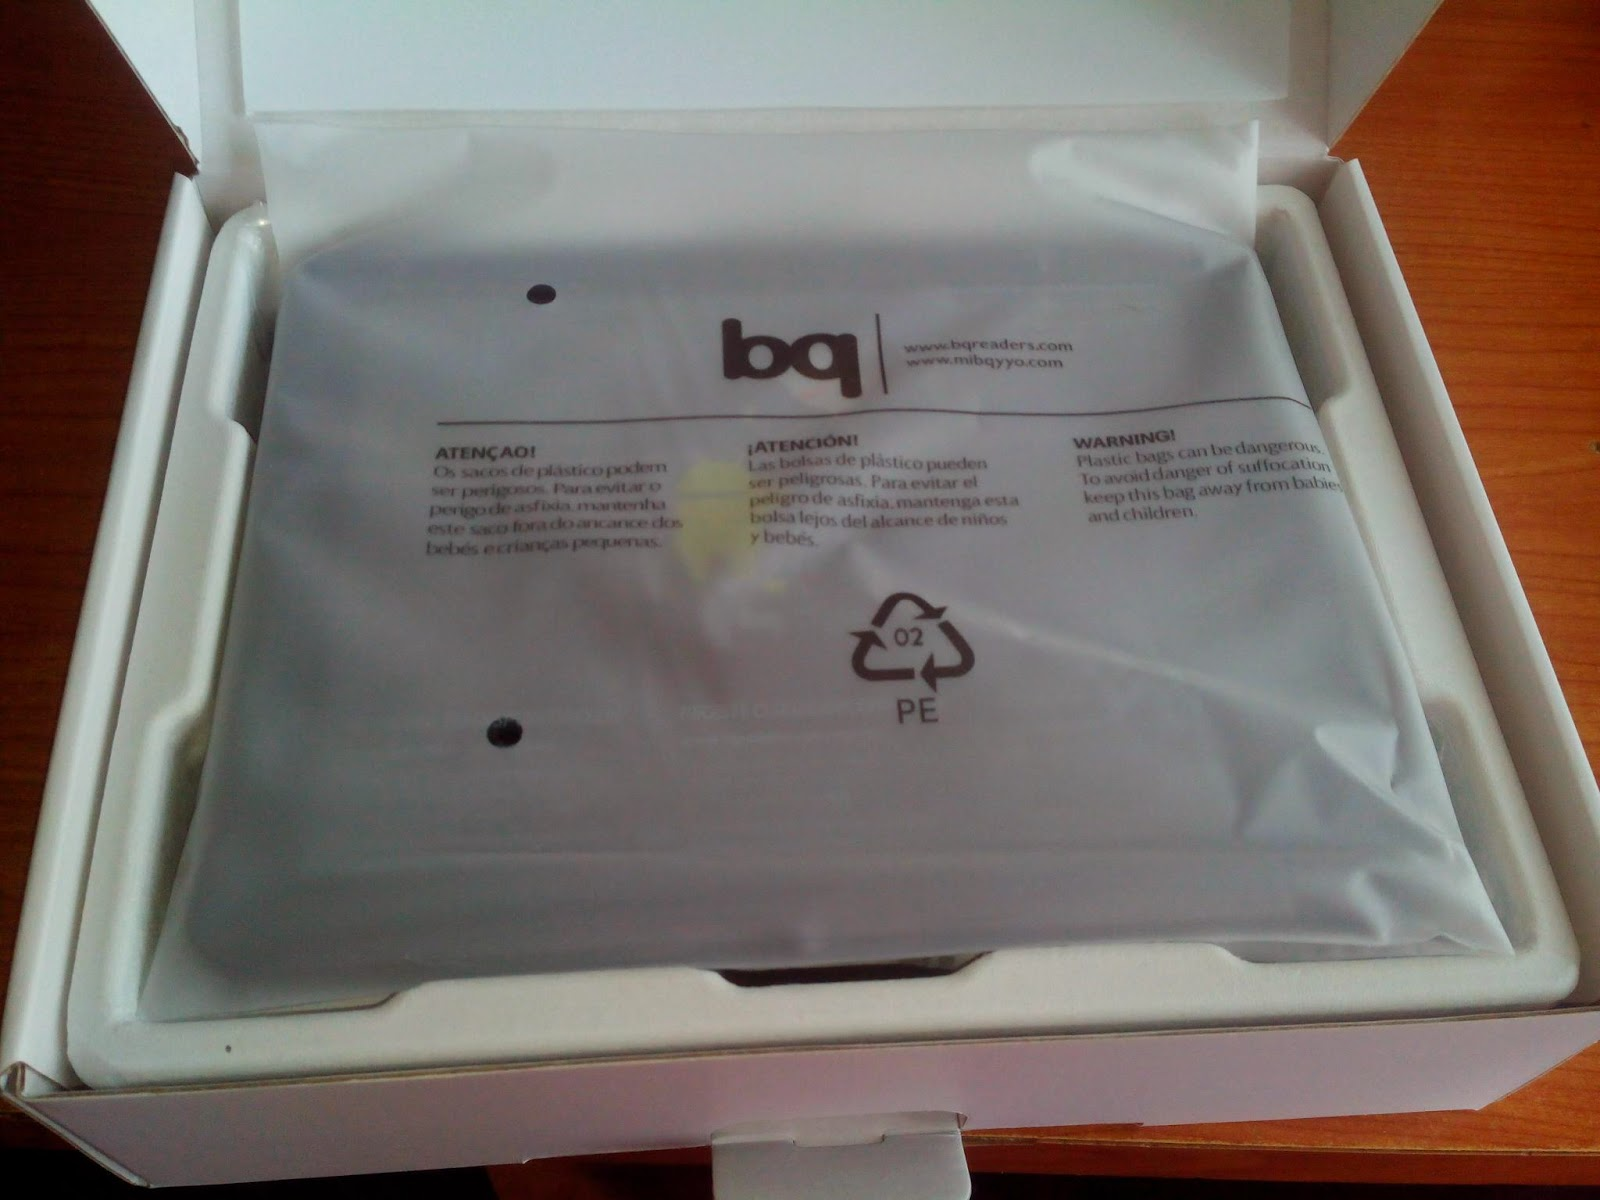 Tablet BQ Curie 2 quadcore interior caja con tablet